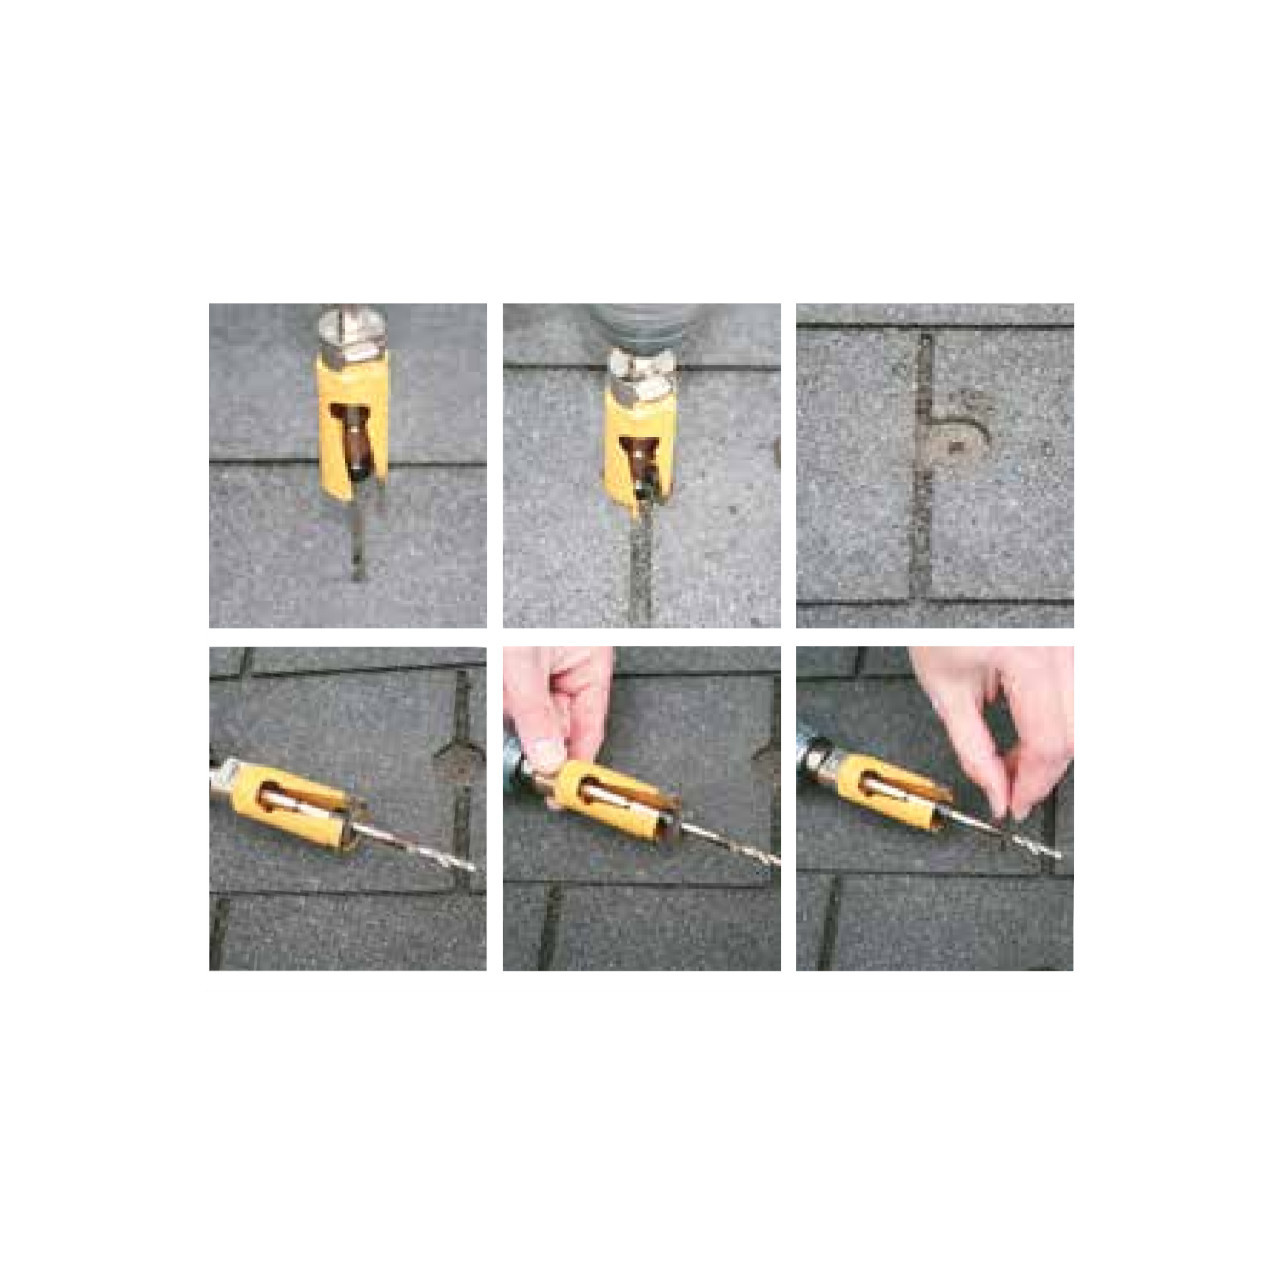 EJOT - Click&Drill - In Use